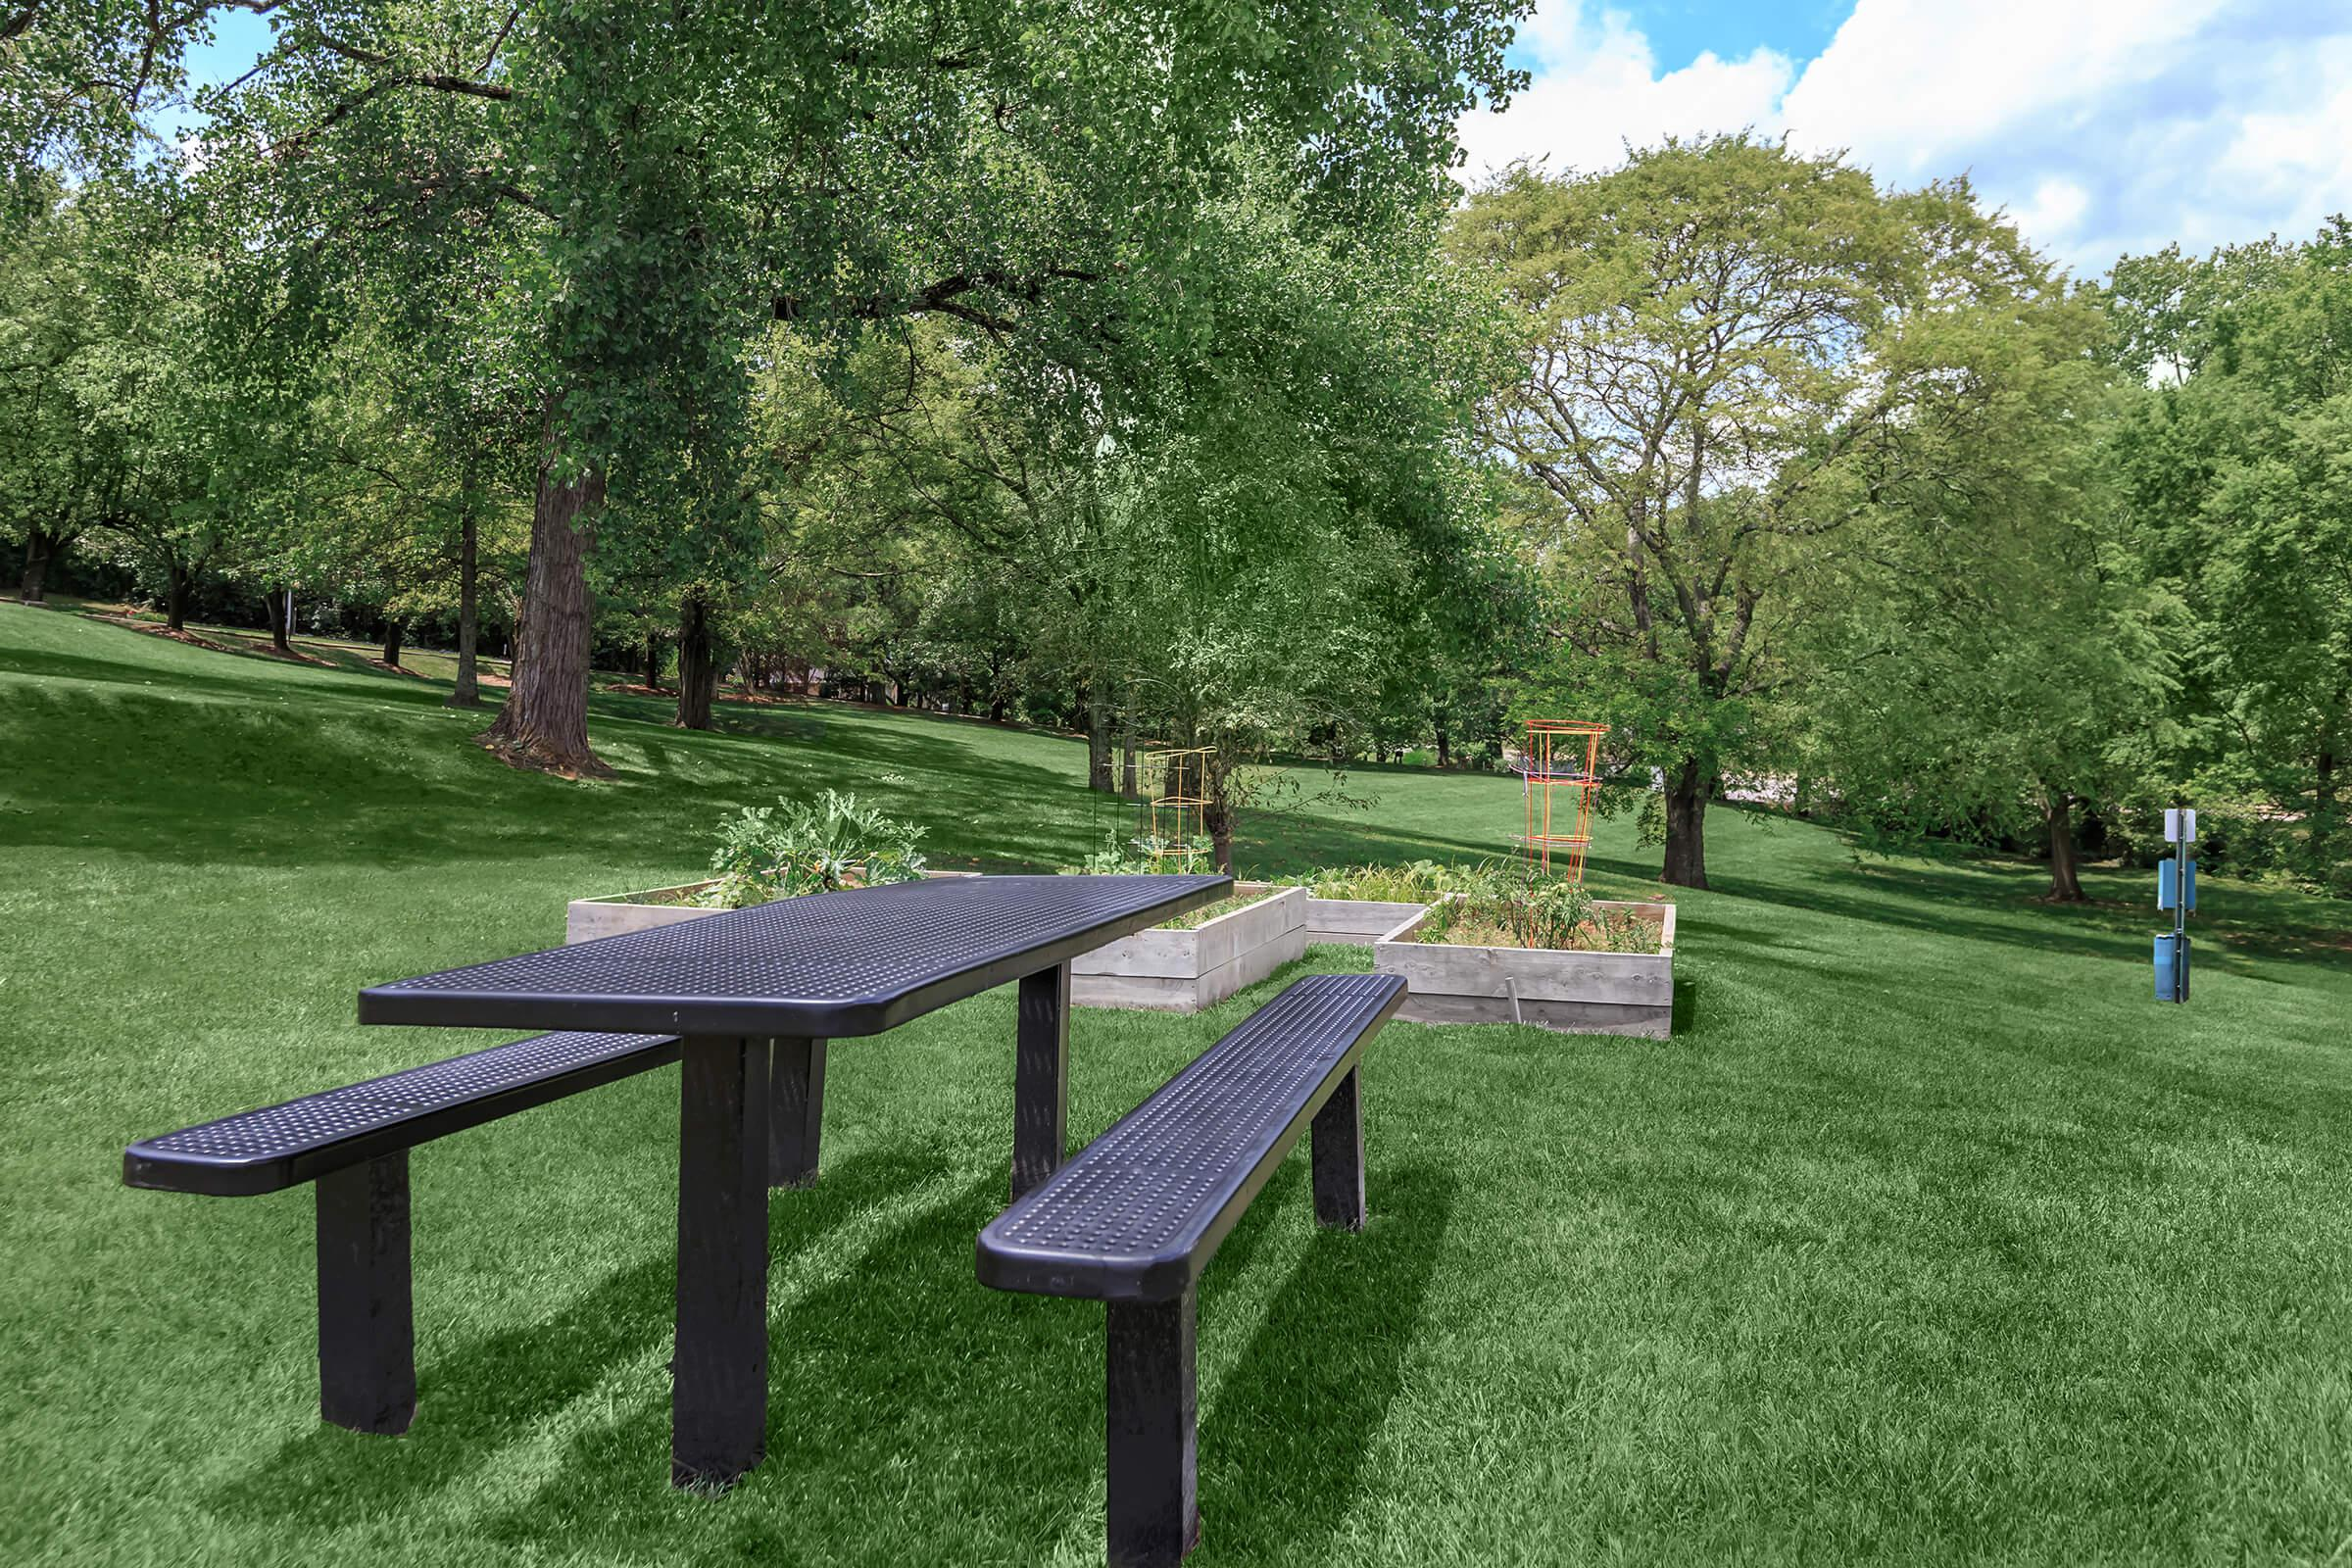 relax with a yummy picnic at Sunrise Apartments in Nashville, Tennessee